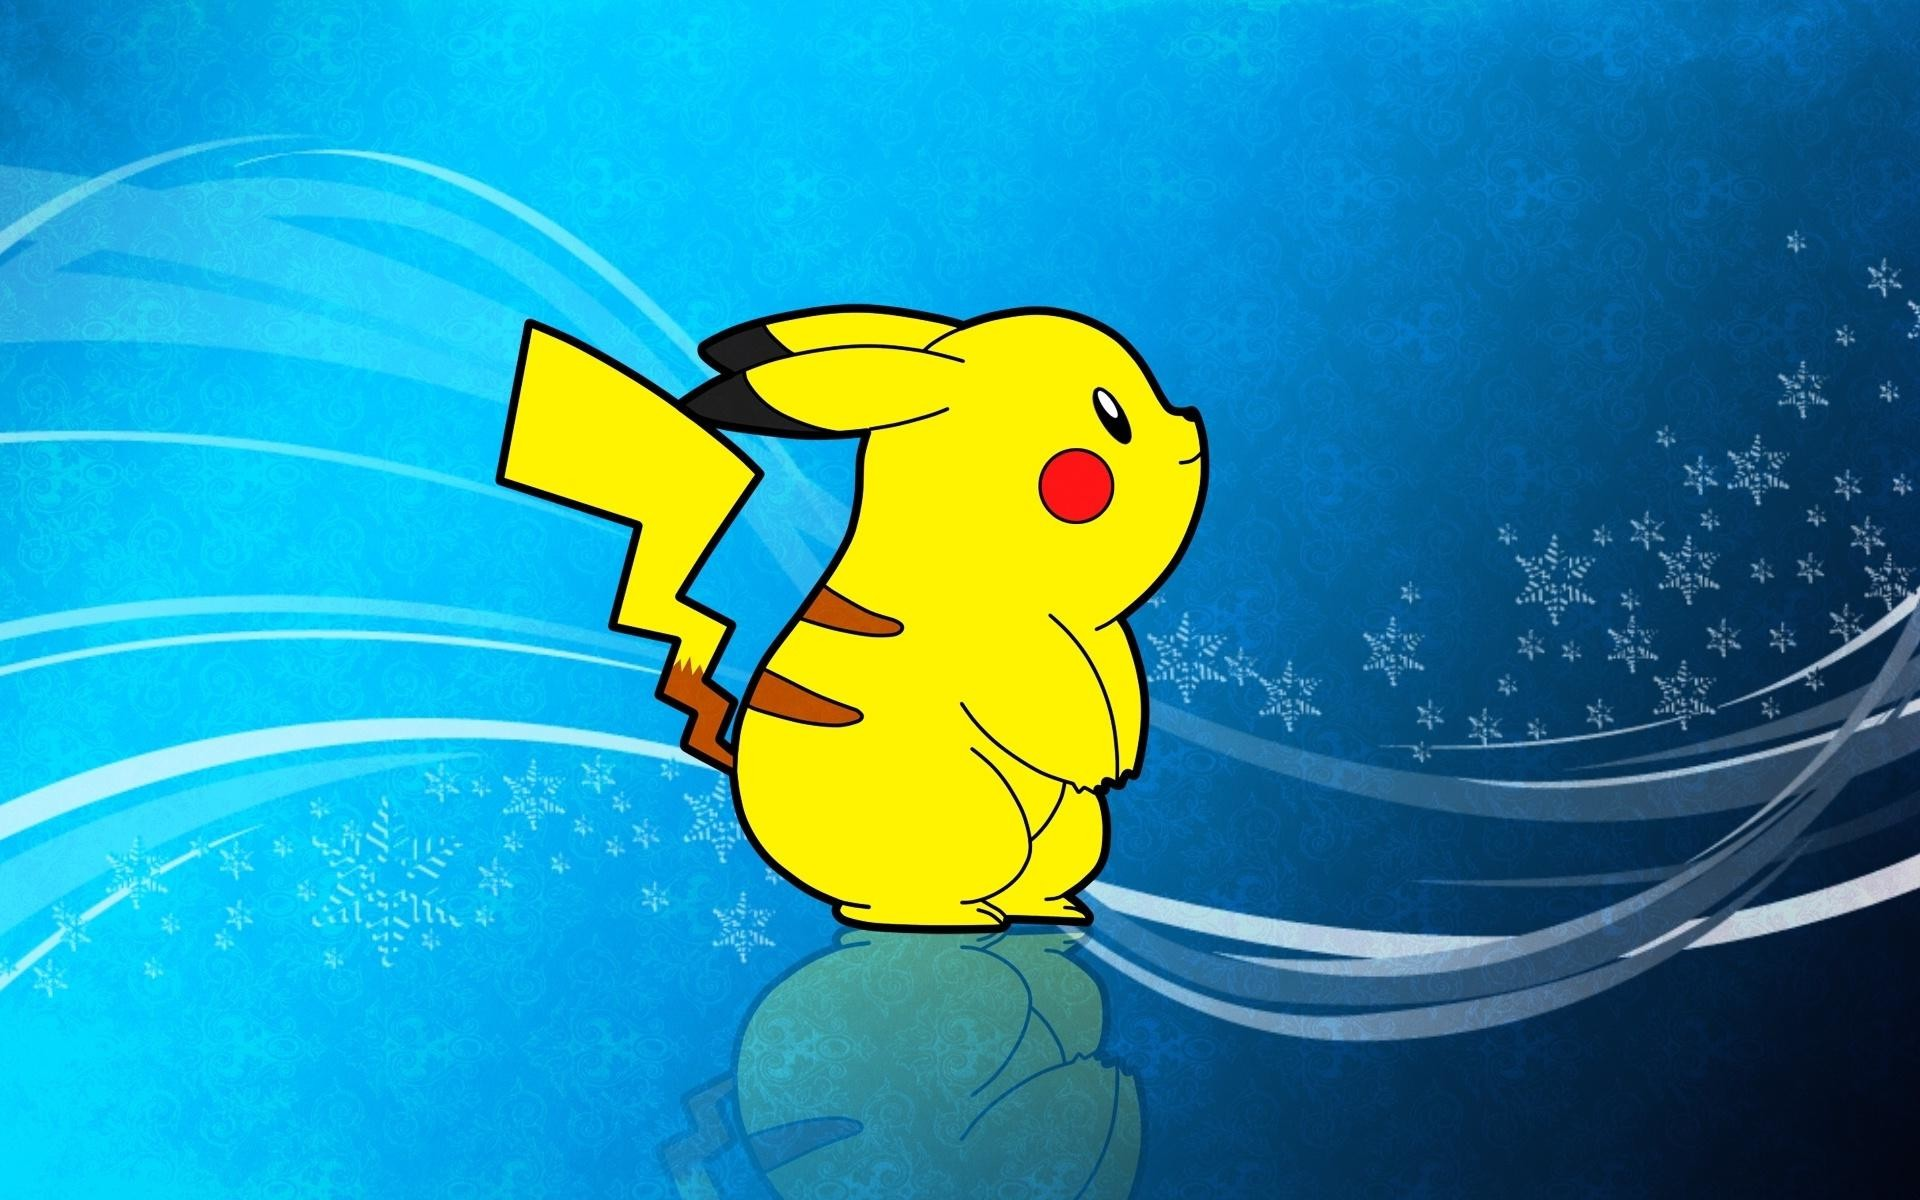 1920x1200 Pikachu pokemon yellow anime HD wallpaper.